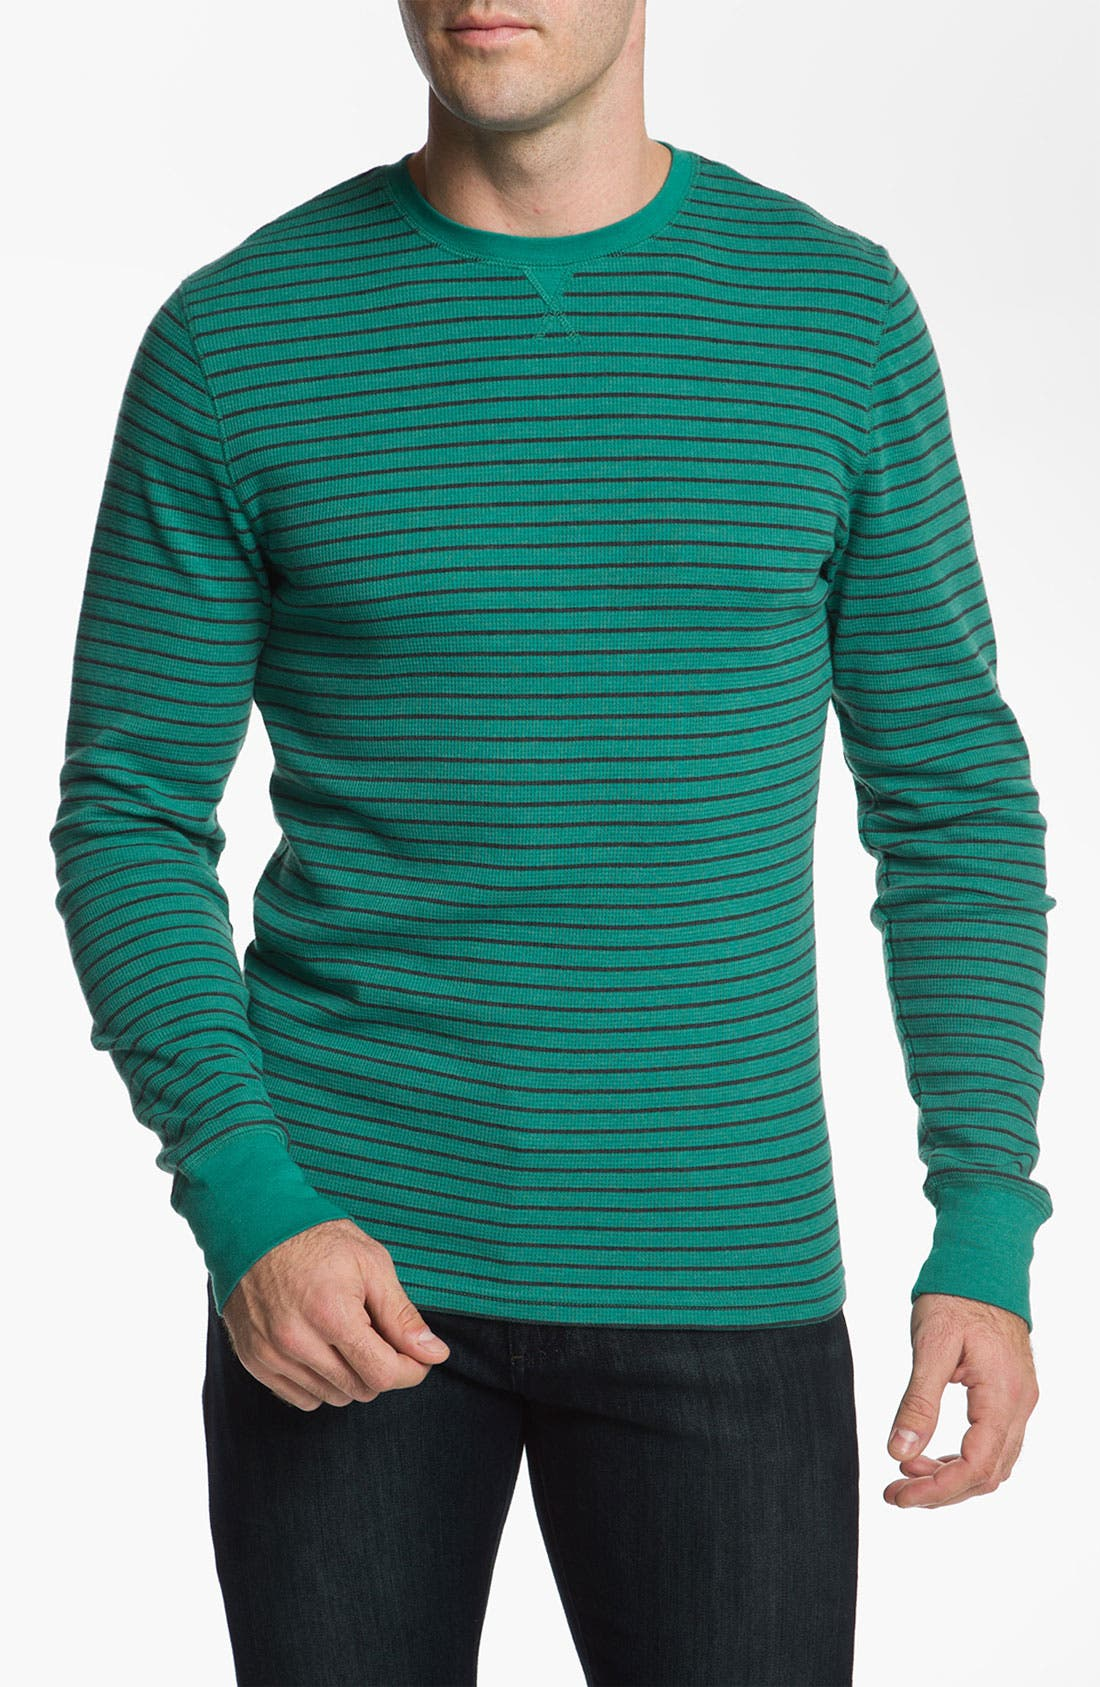 Alternate Image 1 Selected - The Rail by Public Opinion Stripe Thermal Shirt